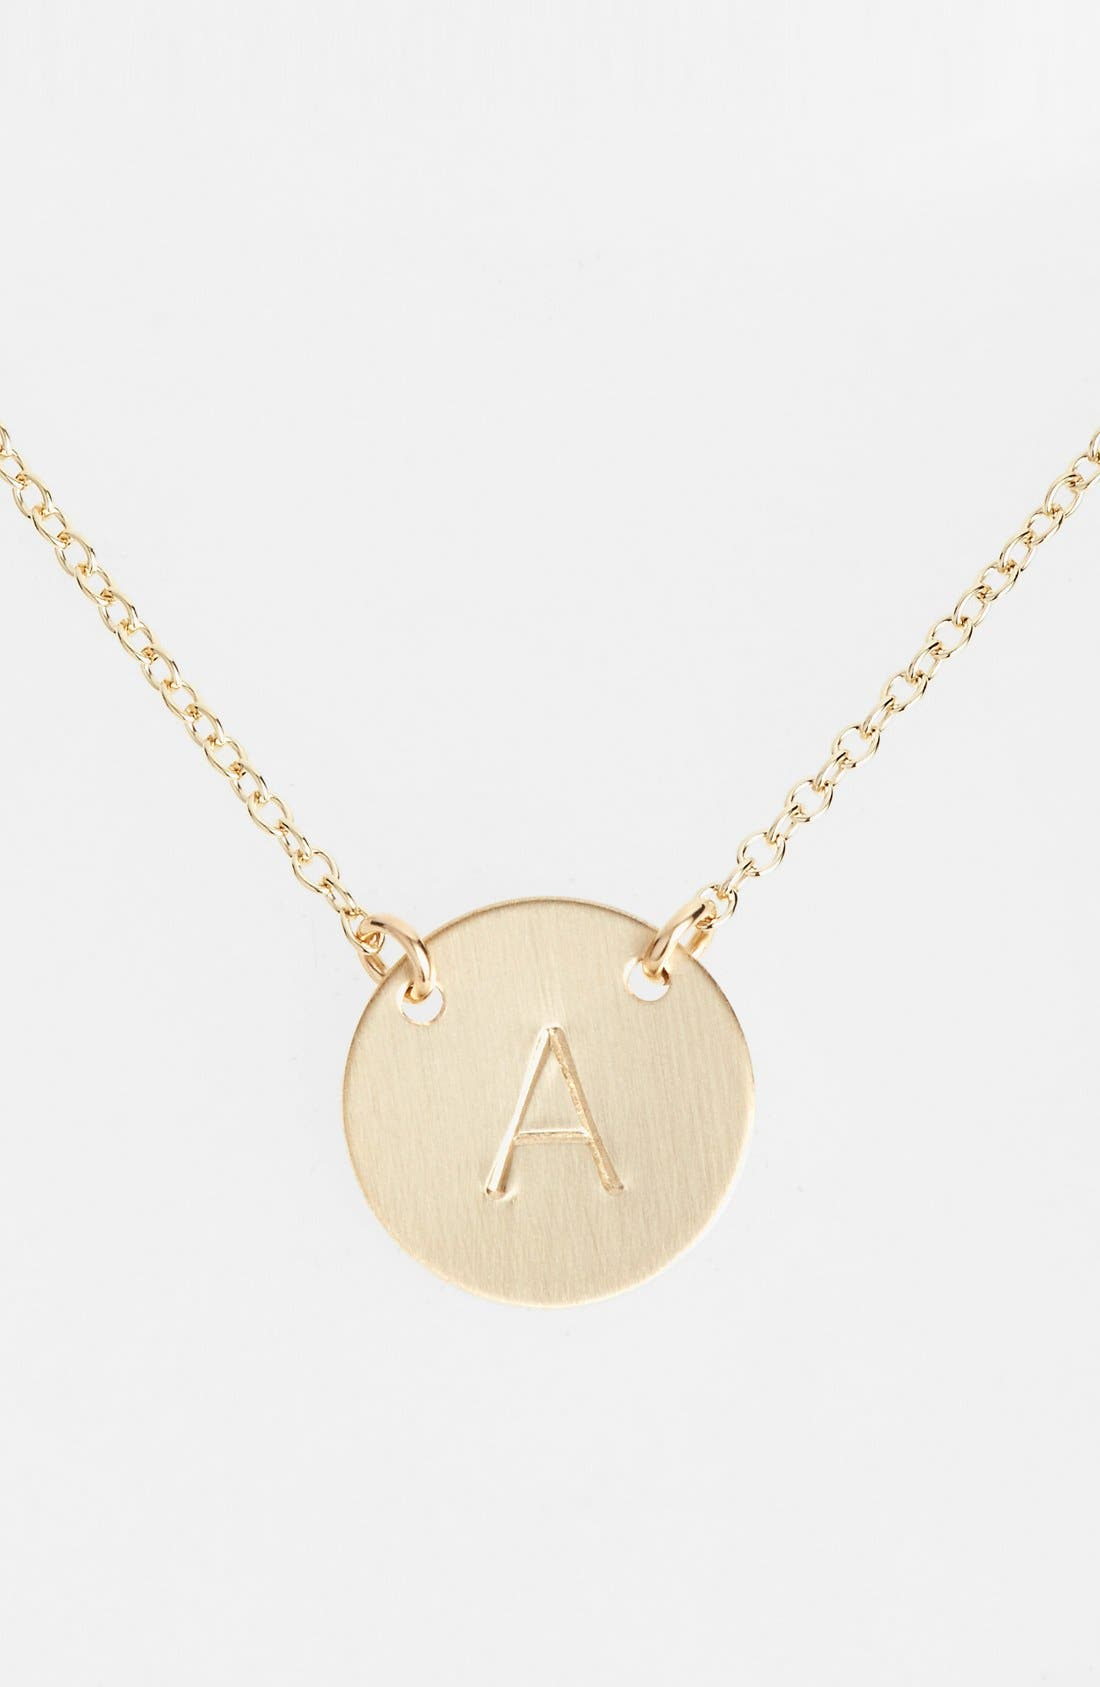 NASHELLE, 14k-Gold Fill Anchored Initial Disc Necklace, Main thumbnail 1, color, 14K GOLD FILL A